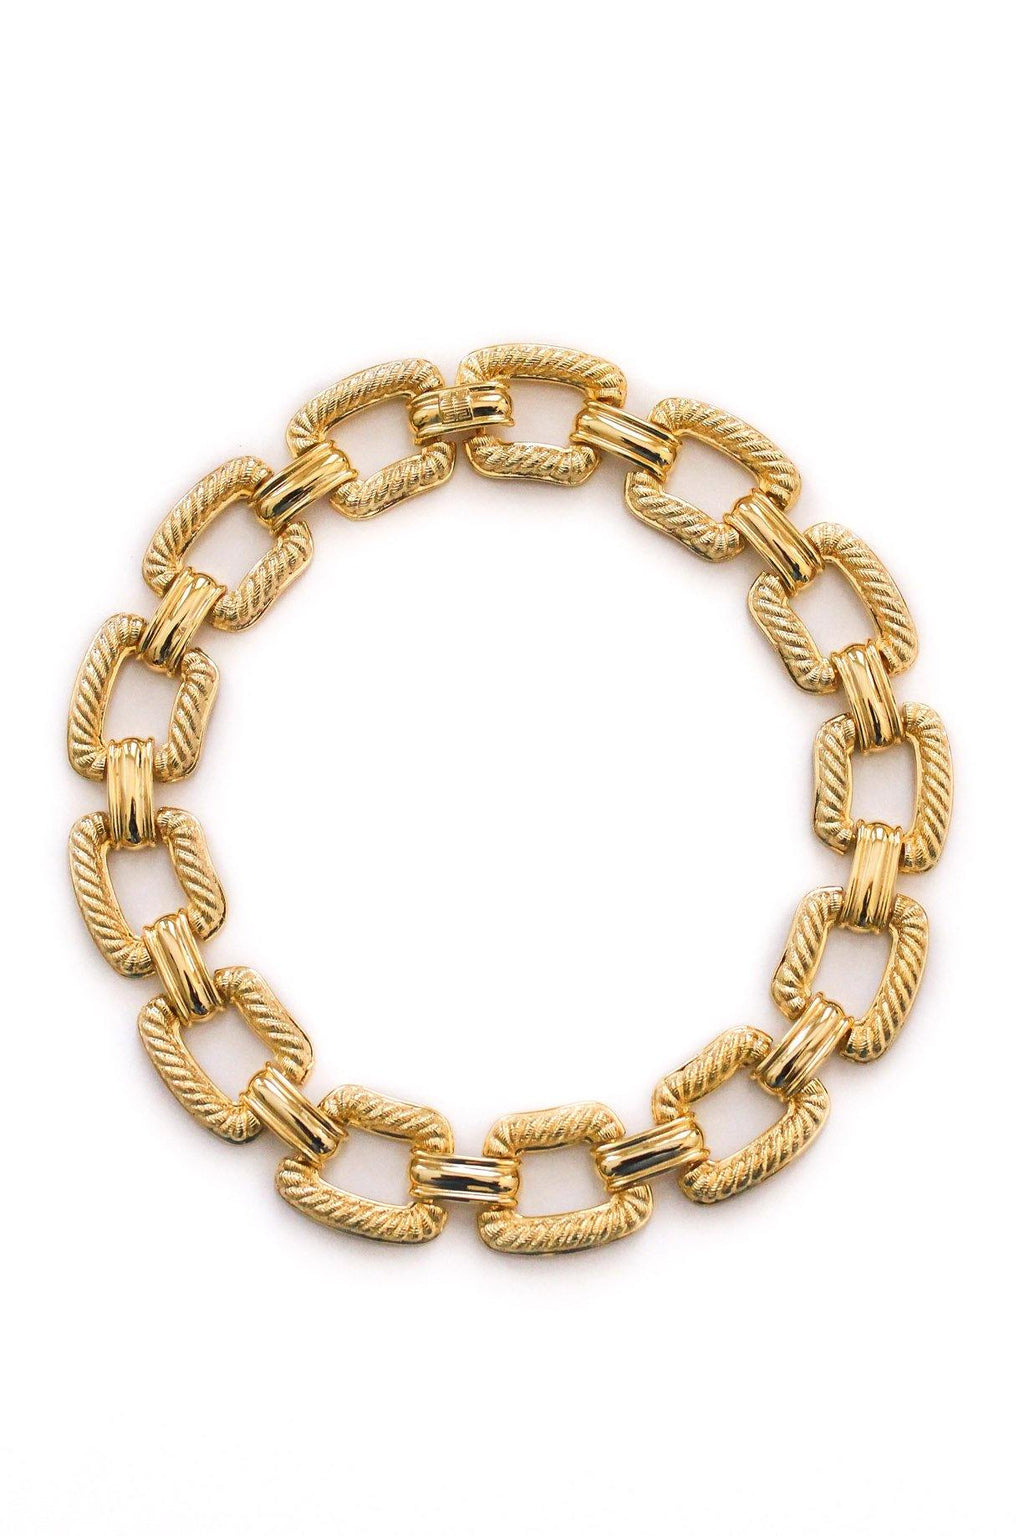 Givenchy Statement Link Necklace